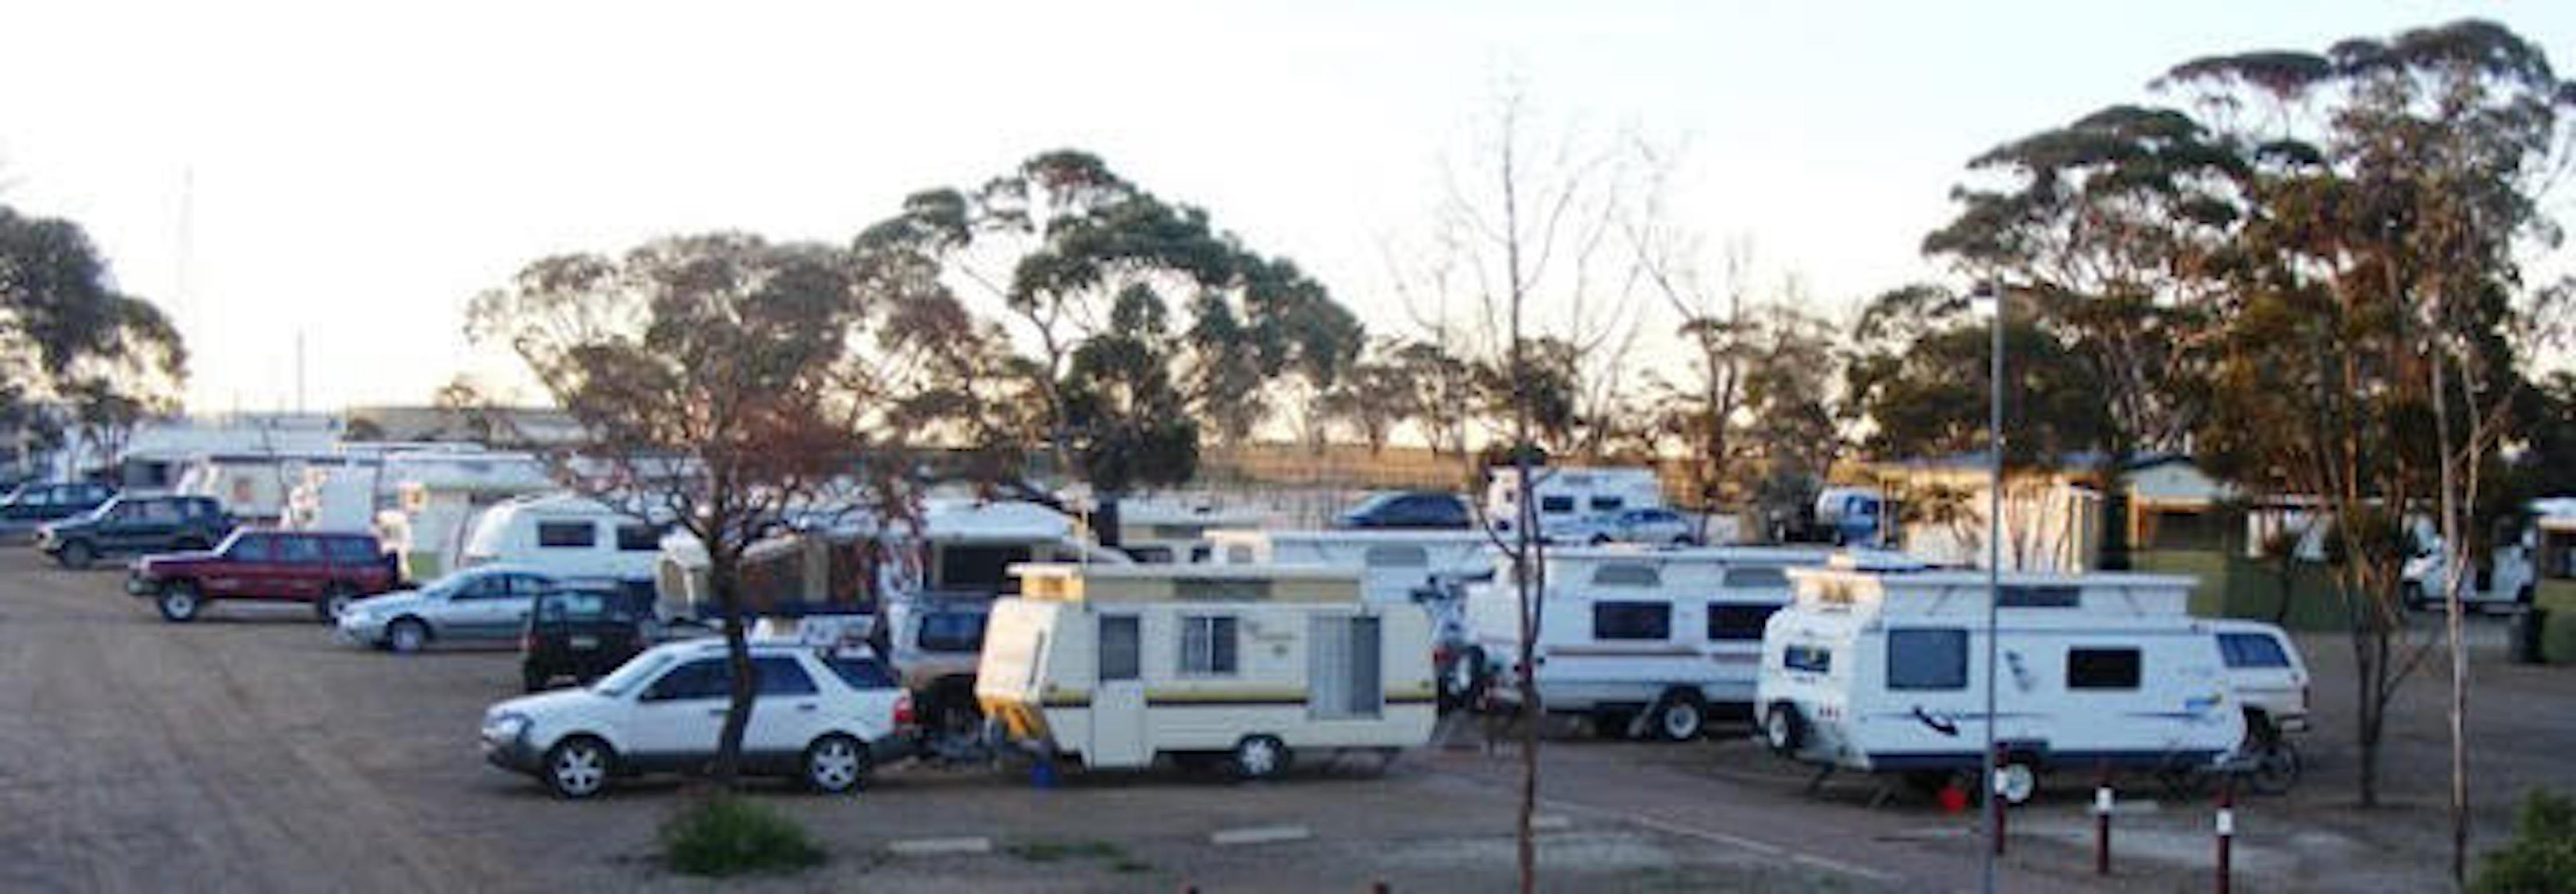 Woomera Traveller's Village and Caravan Park - South Australia Travel